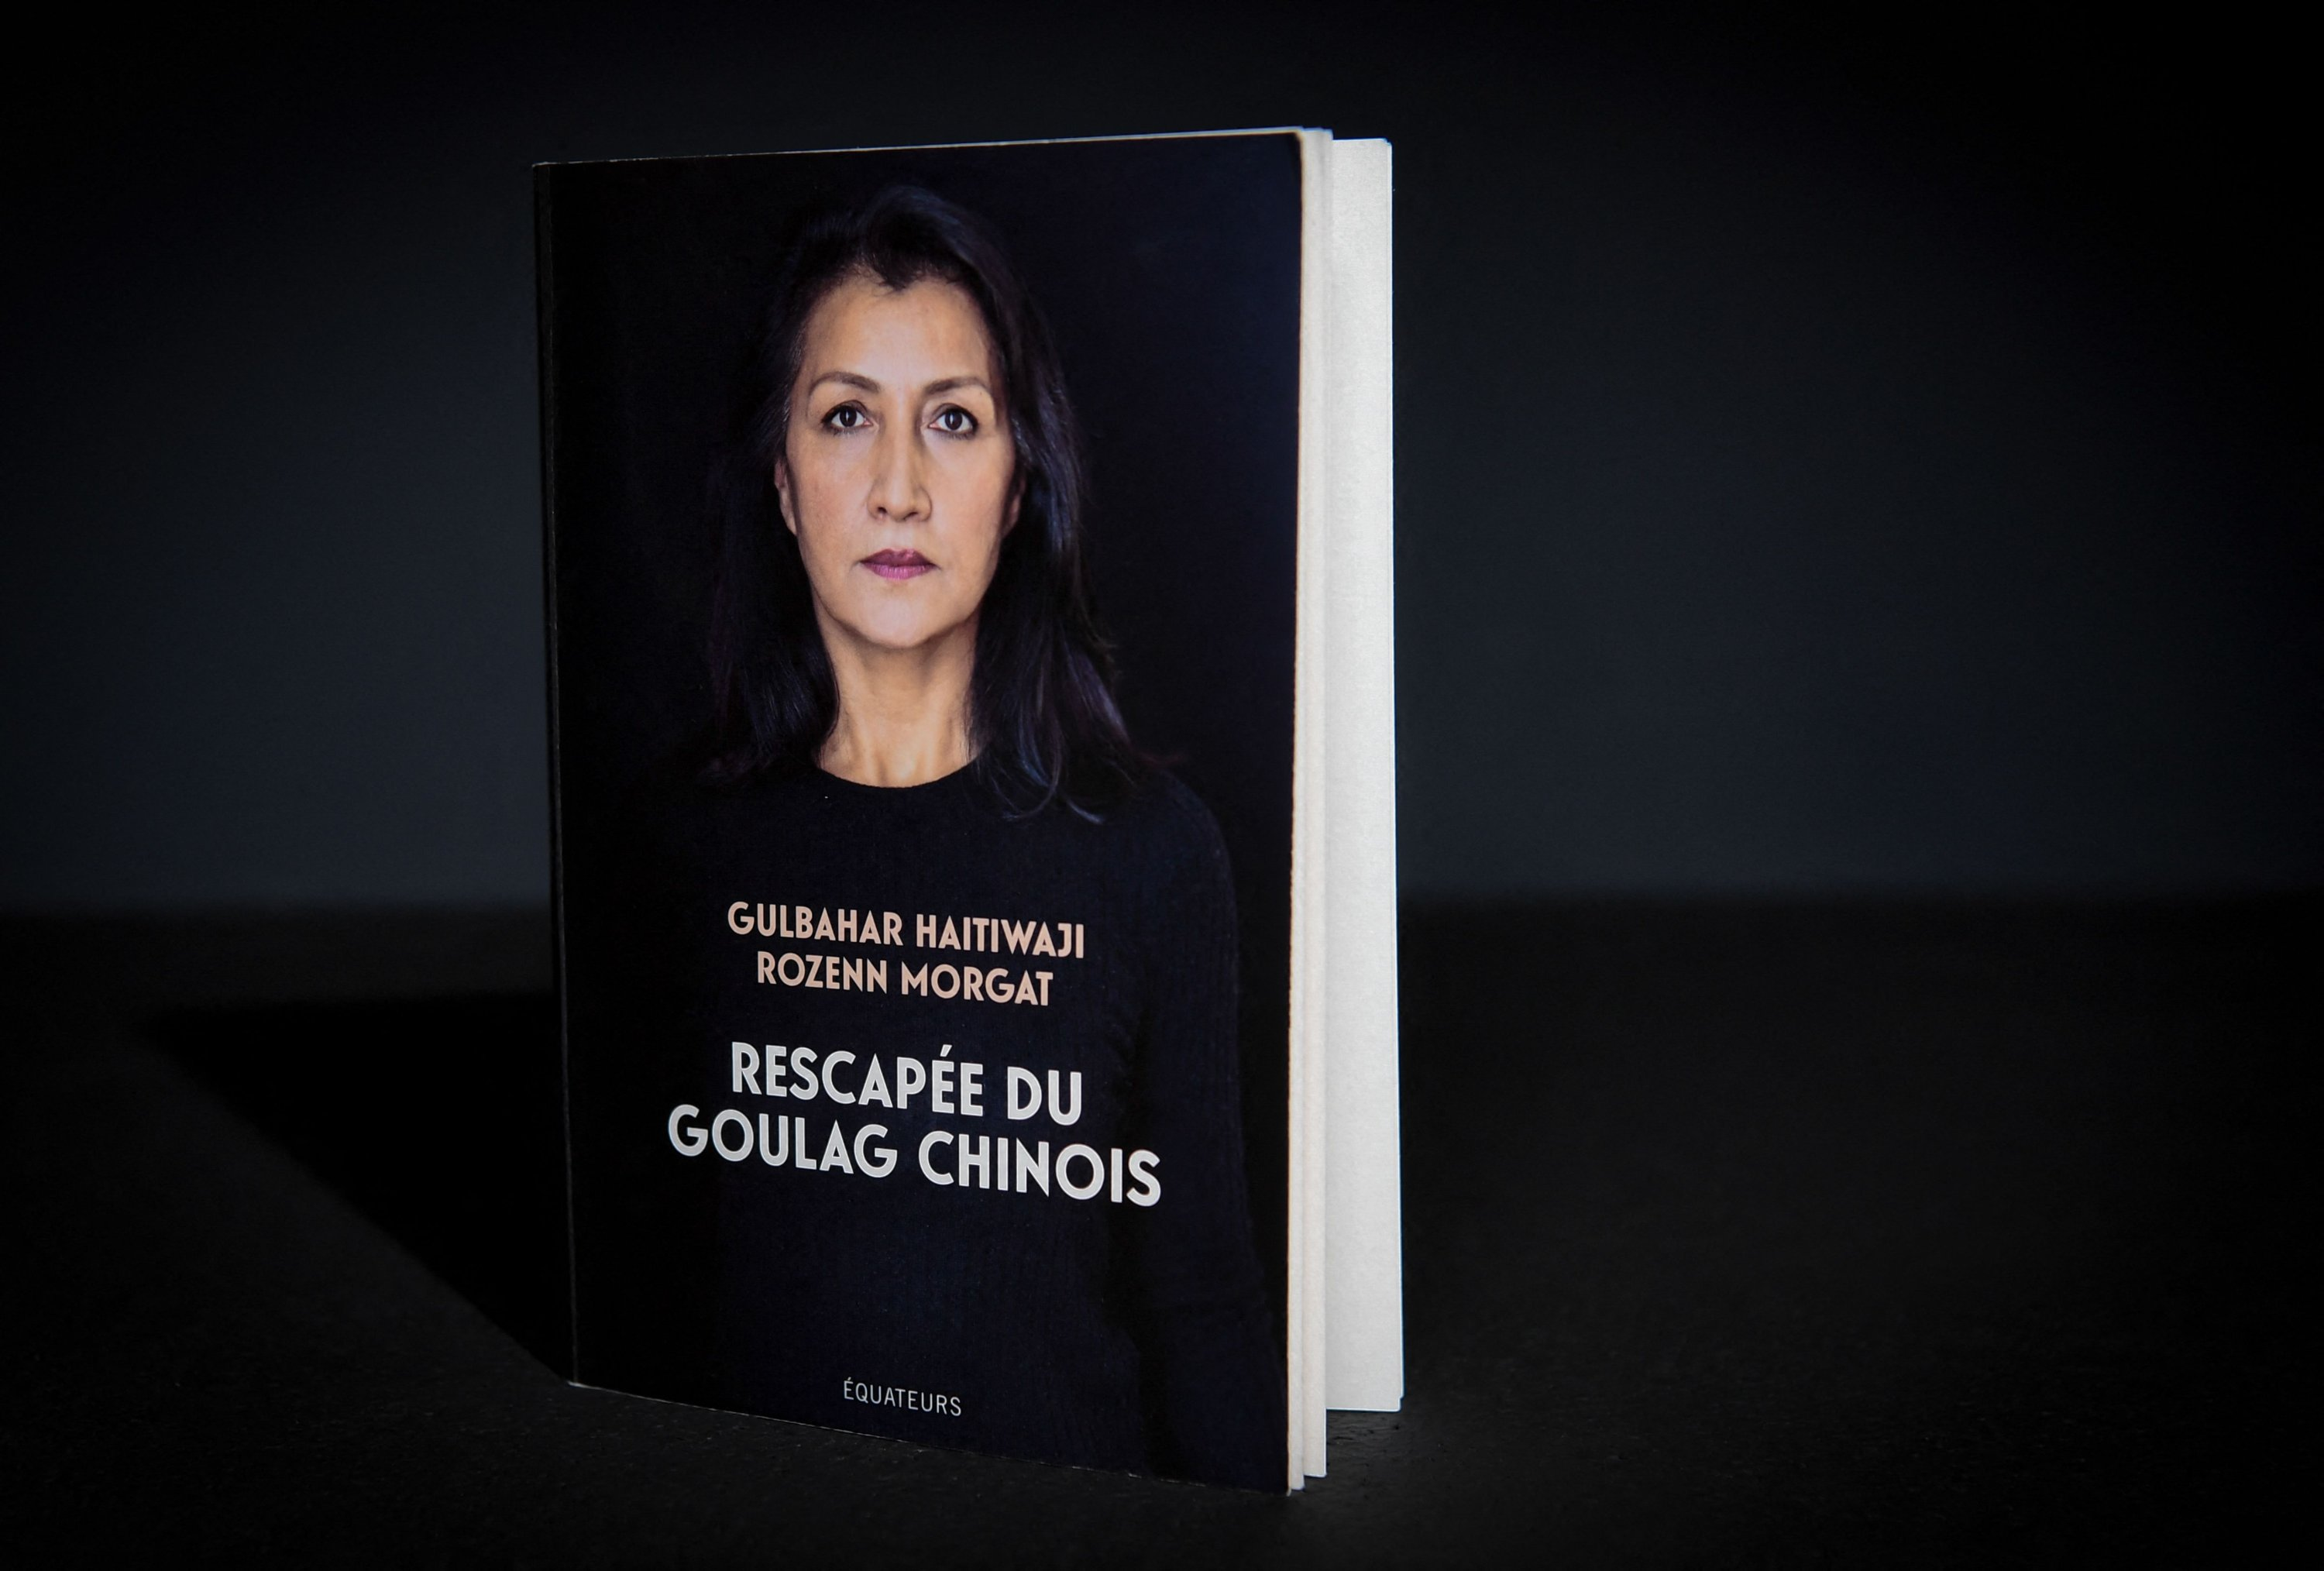 """The book """"Rescapee du Goulag Chinois"""" (Survivor of the Chinese Gulag), written by Gulbahar Haitiwaji, co-authored with Le Figaro journalist Rozenn Morgat and published by Editions des Equateurs can be seen, Paris, March 1, 2021. (AFP Photo)"""